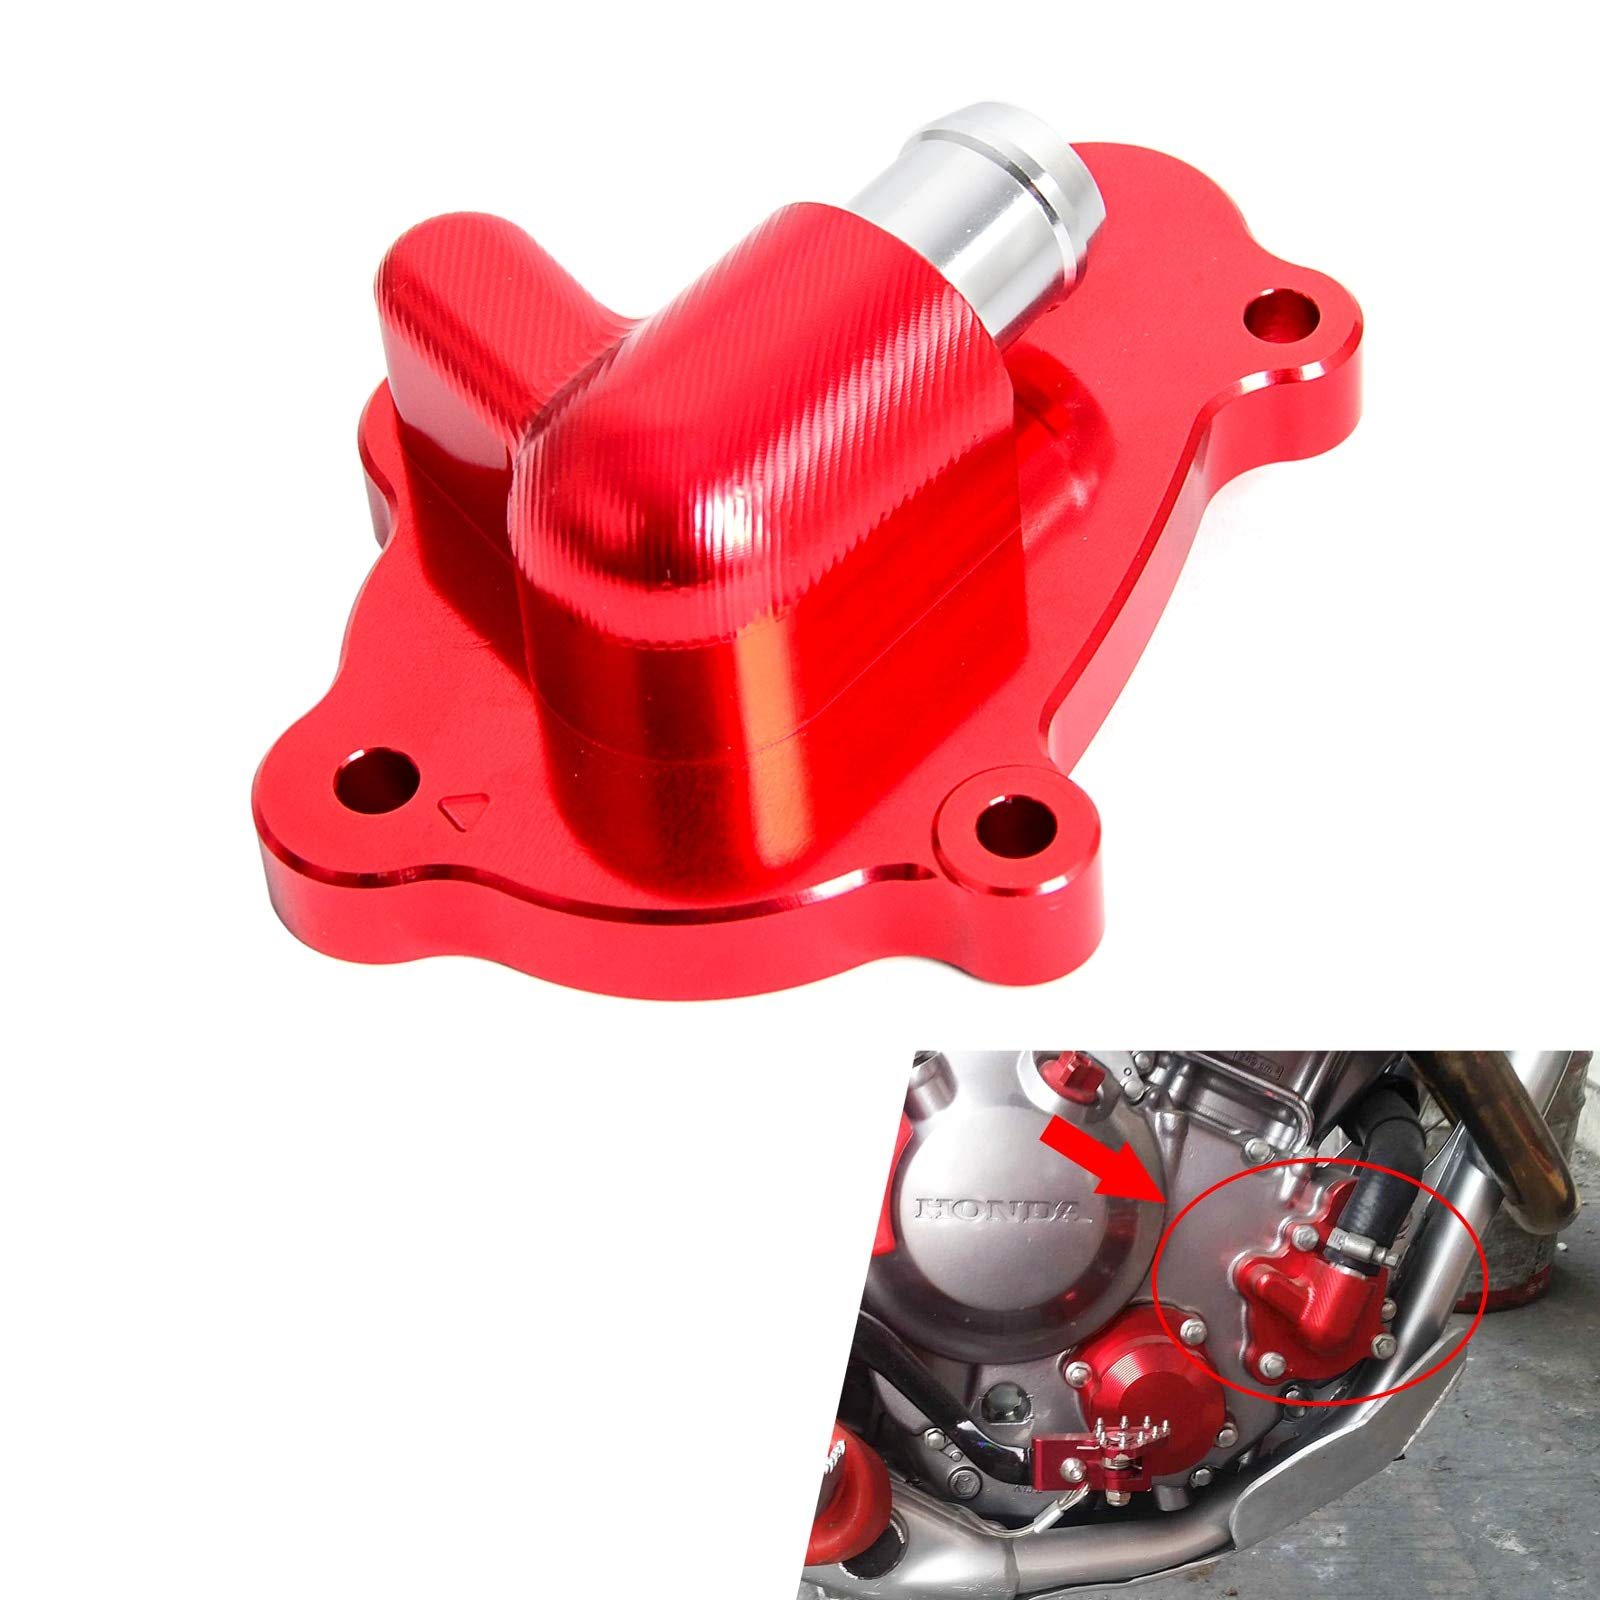 Water Pump Protector Cover Protector For Supermoto Dirt Bike